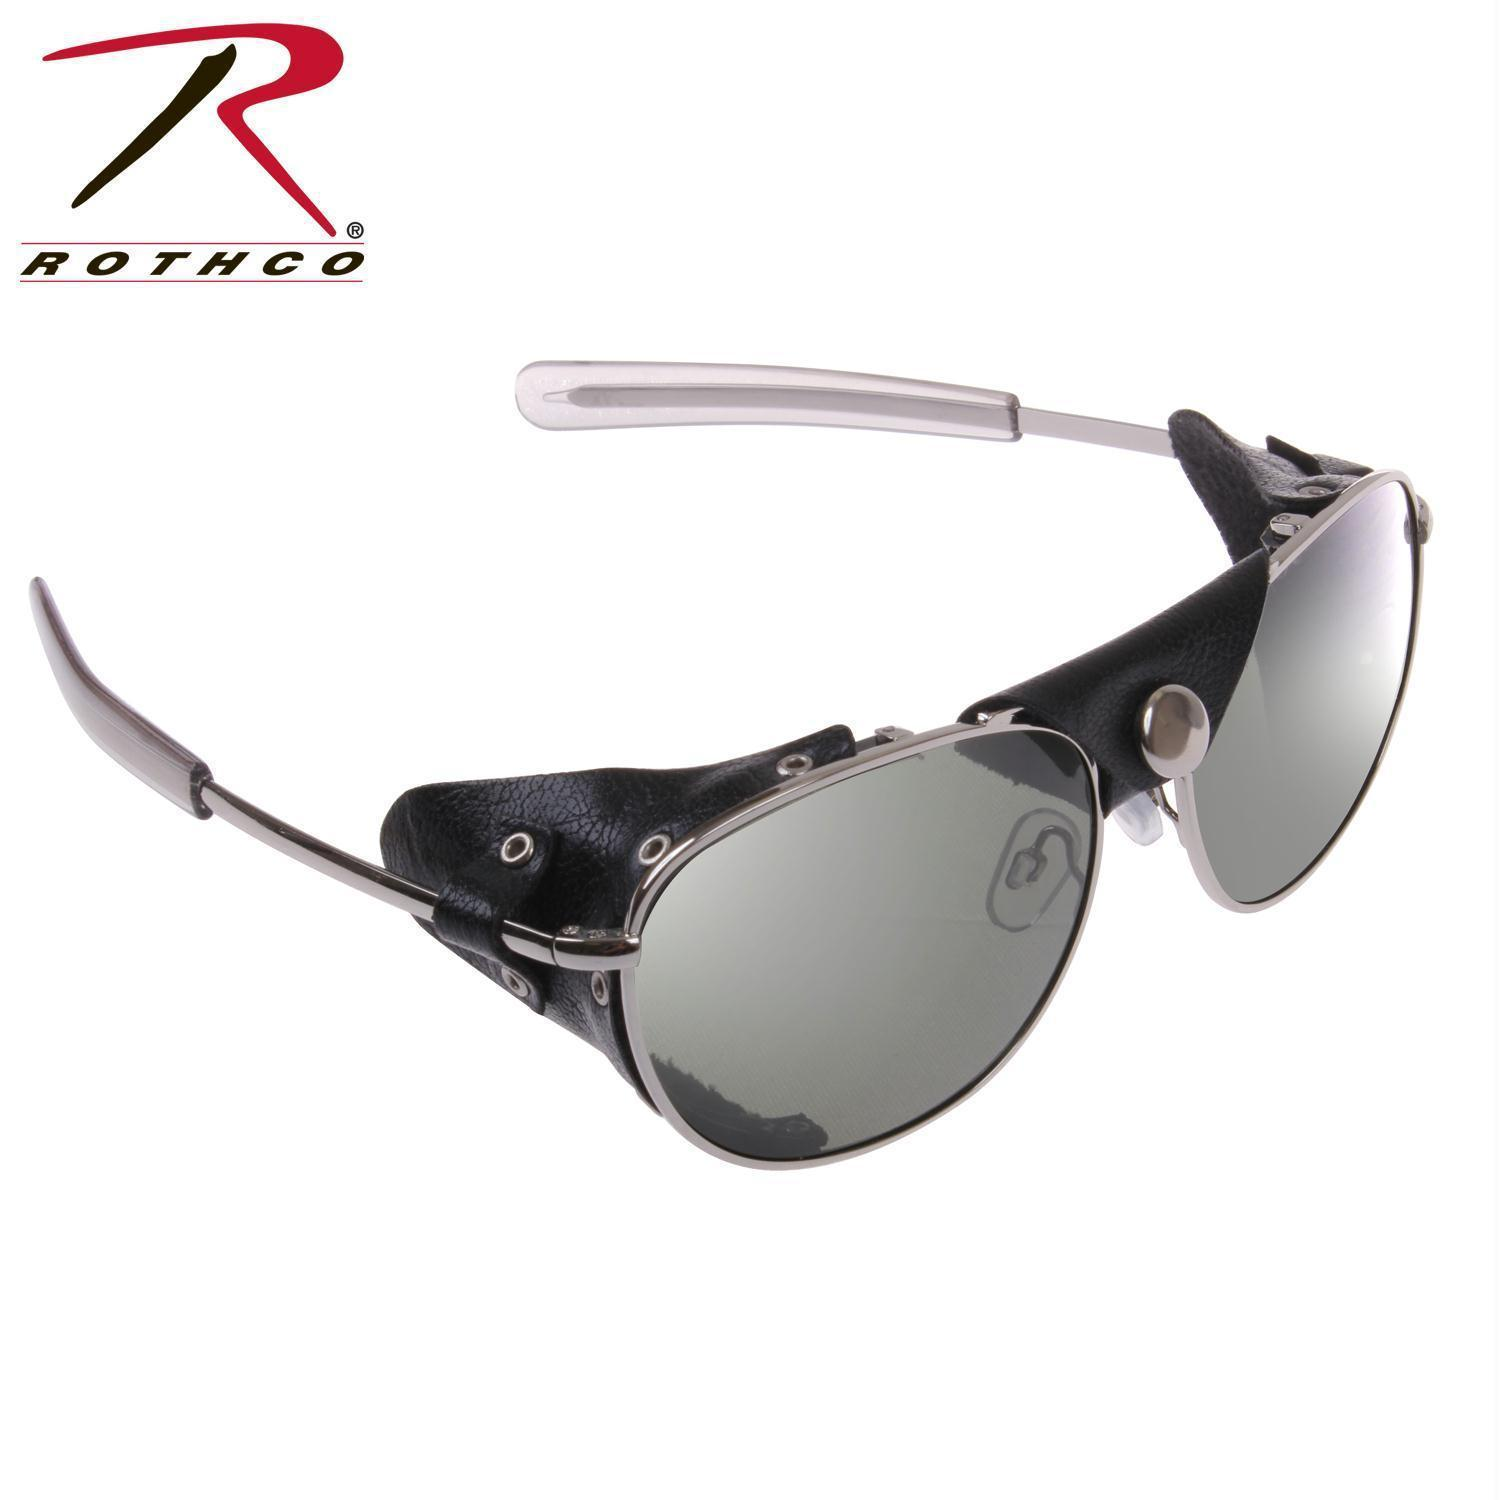 Rothco Tactical Aviator Sunglasses With Wind Guards